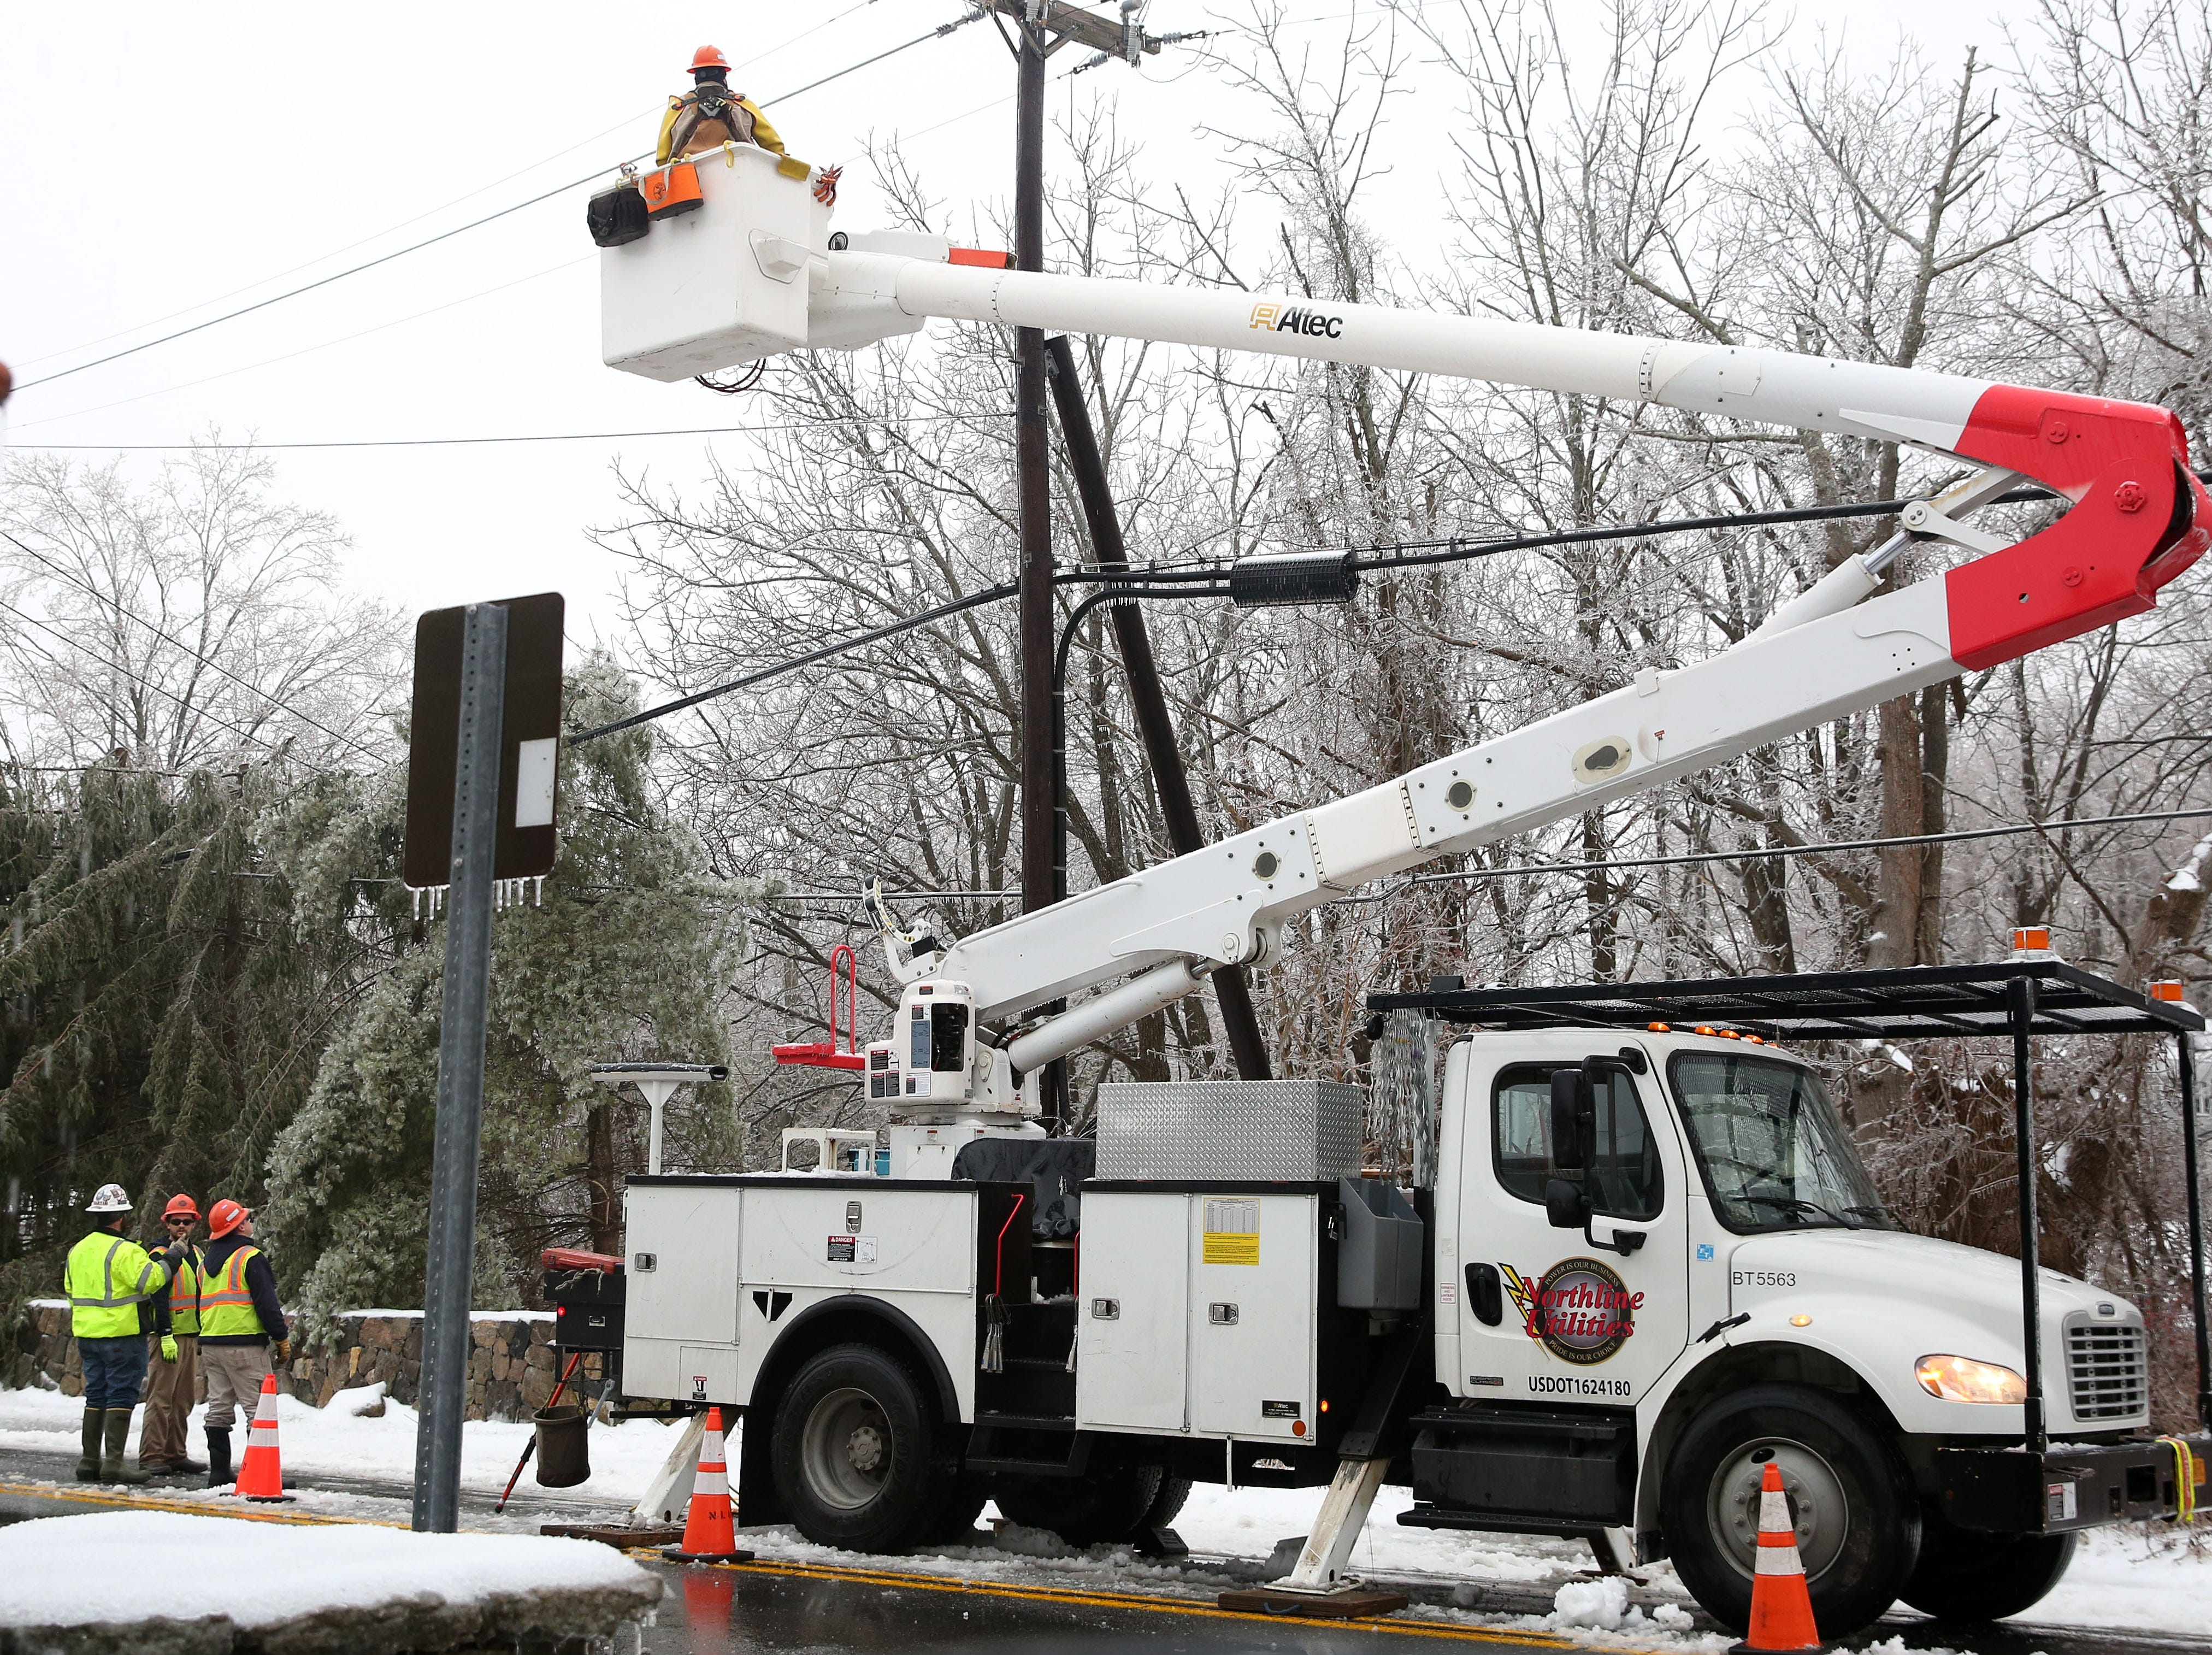 Utility crews with Northline Utilities work on  power lines at  Route 121 and Dingle Ridge Road in North Salem Jan. 20, 2019. Northline Utilities is based in Au Sable Forks, N.Y., and had crews in working in the area to assist NYSEG.